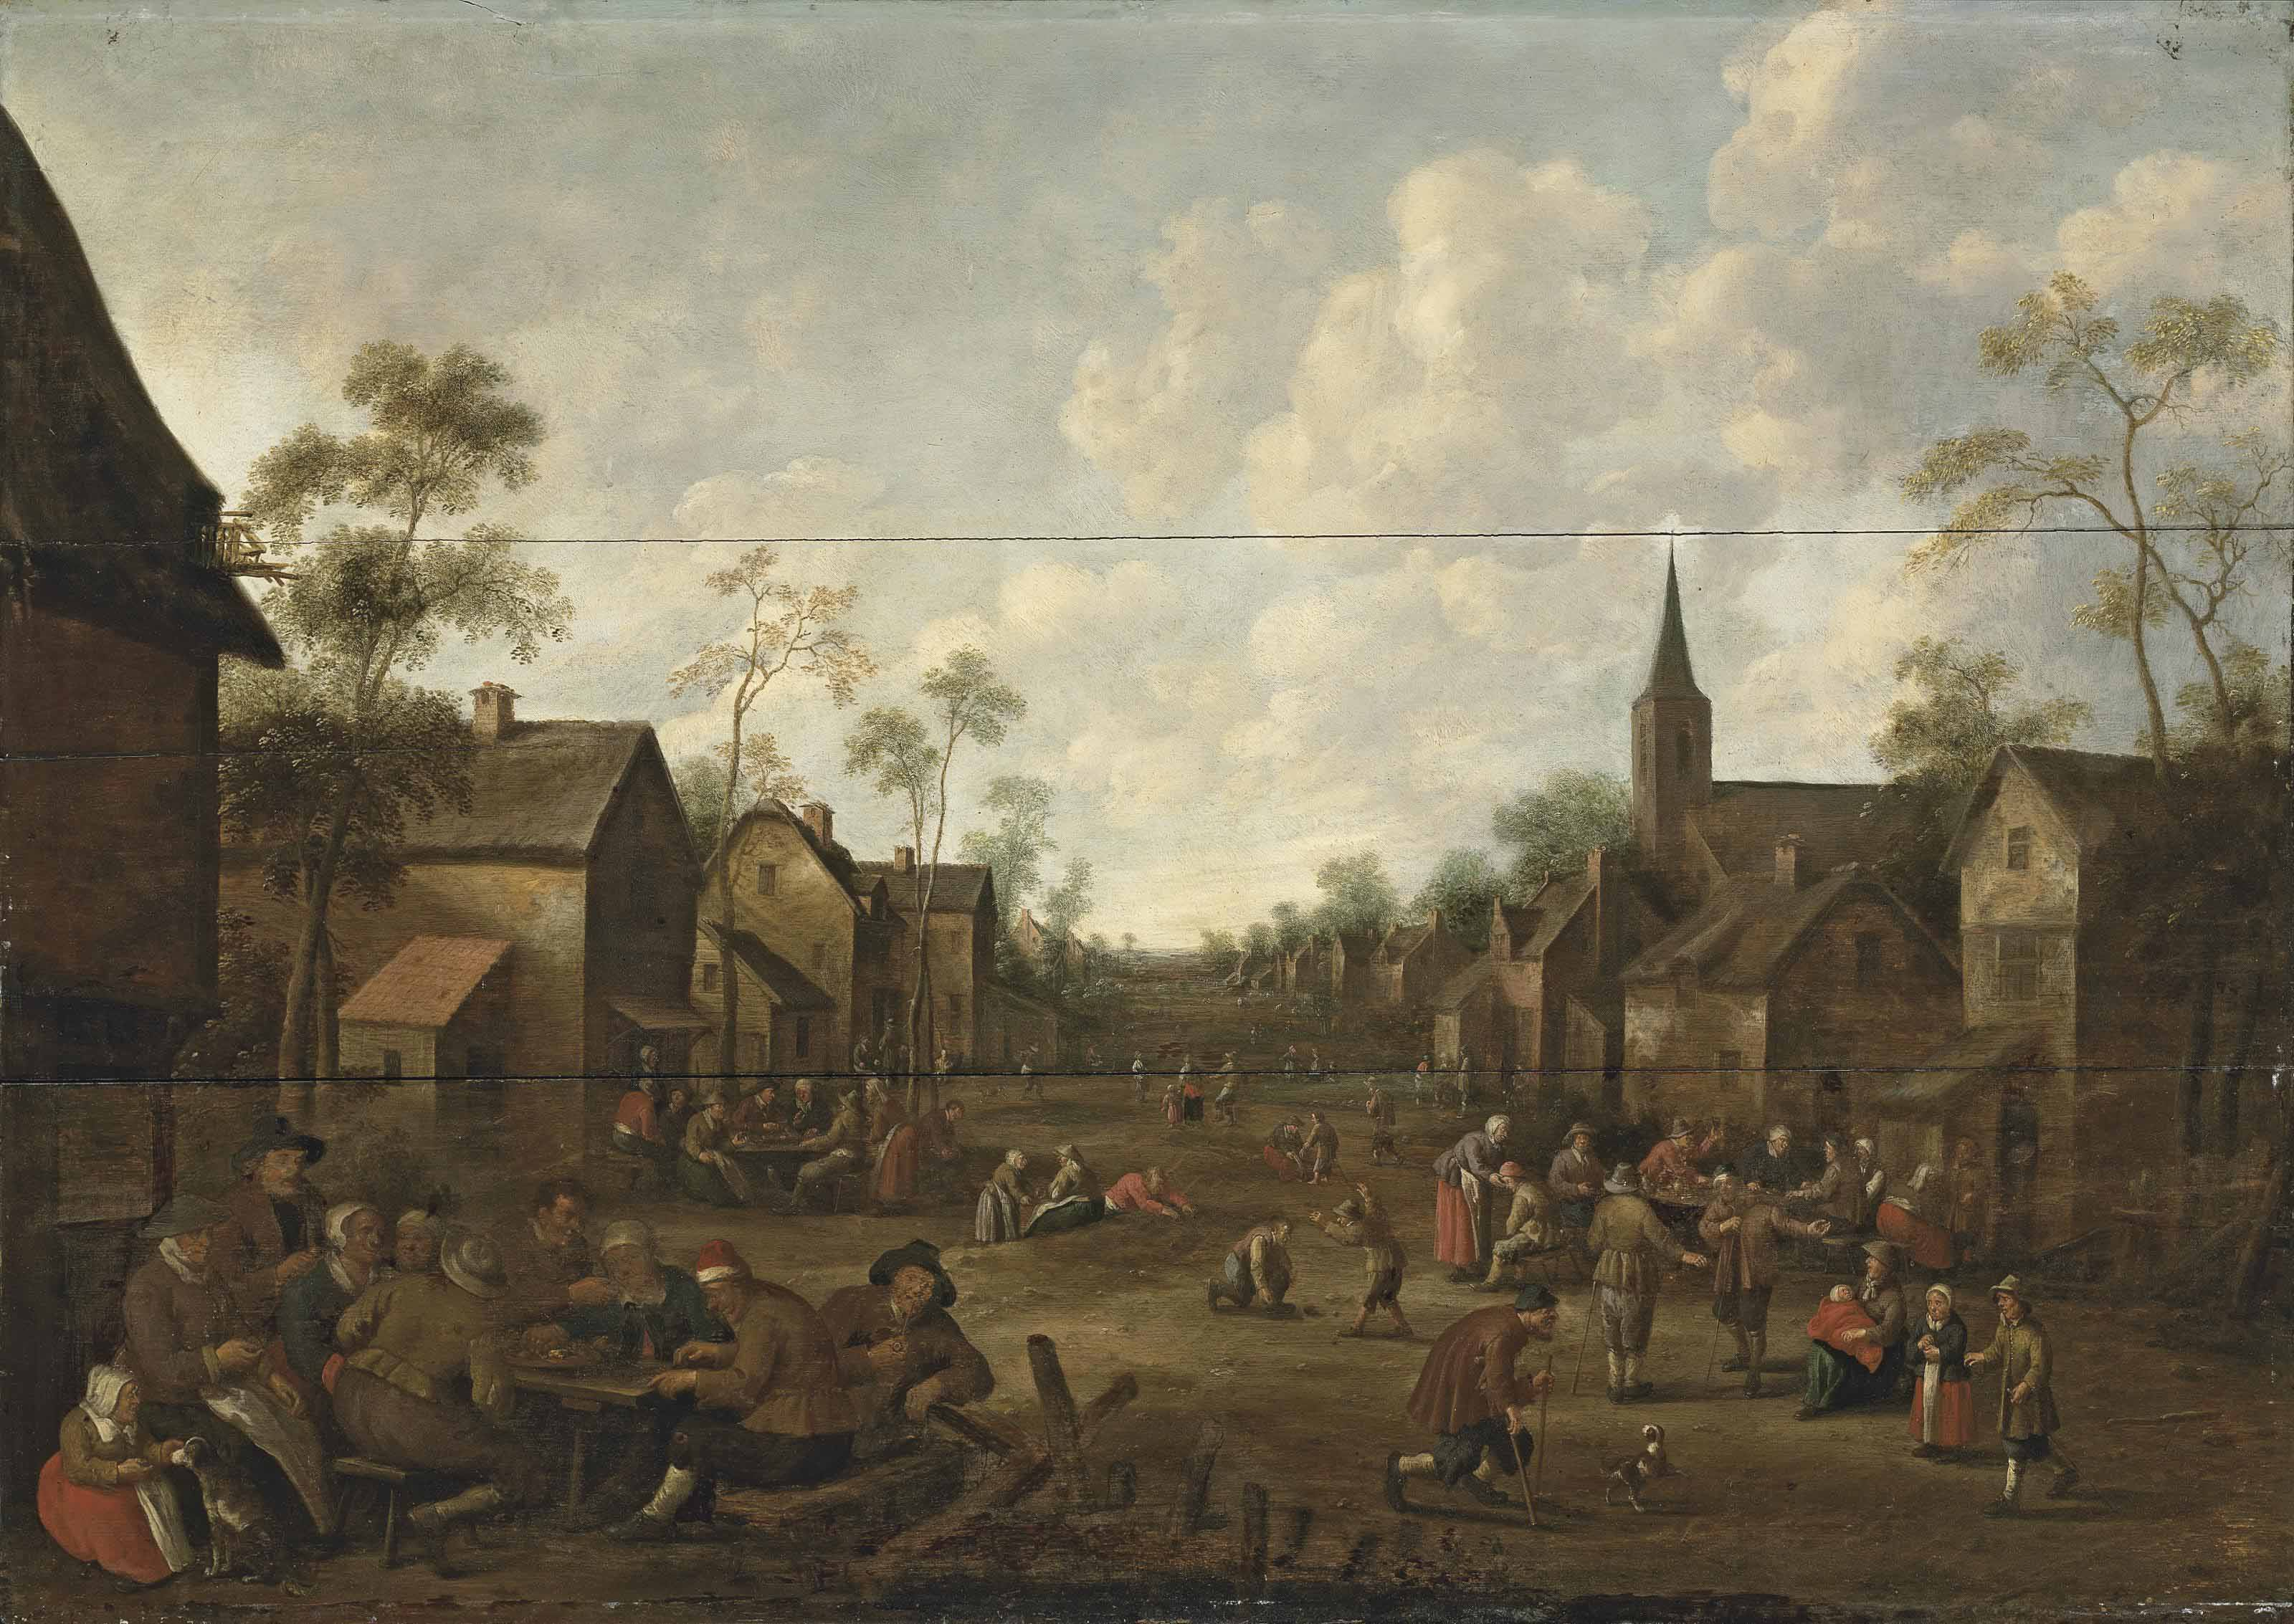 A village feast with figures outside an inn and others playing games